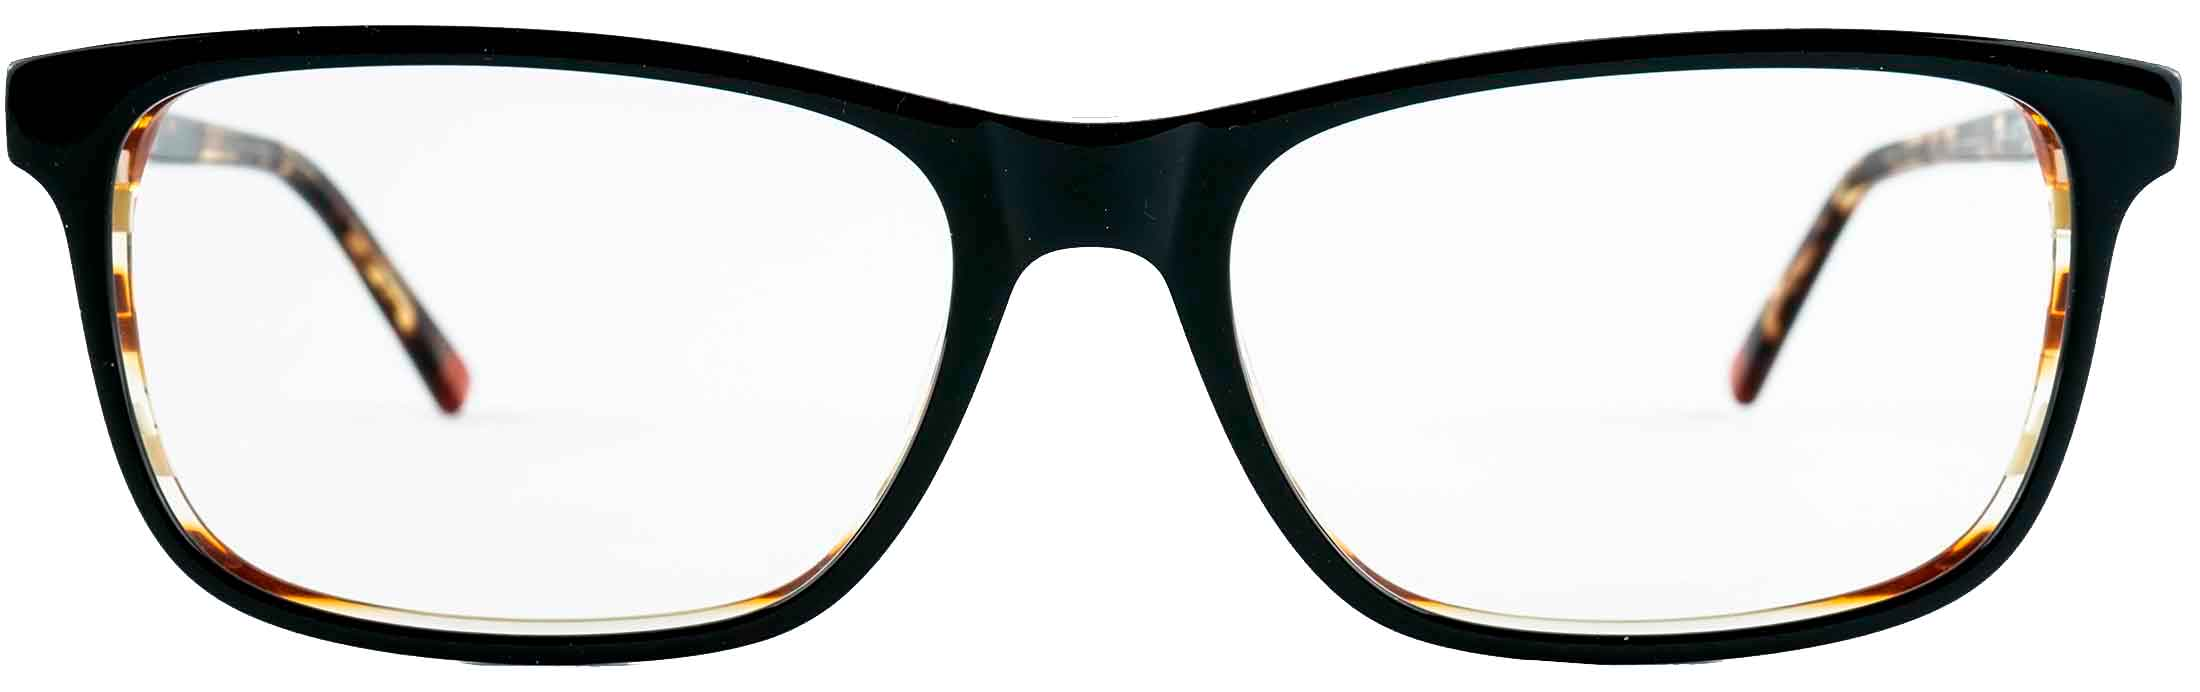 my glasses